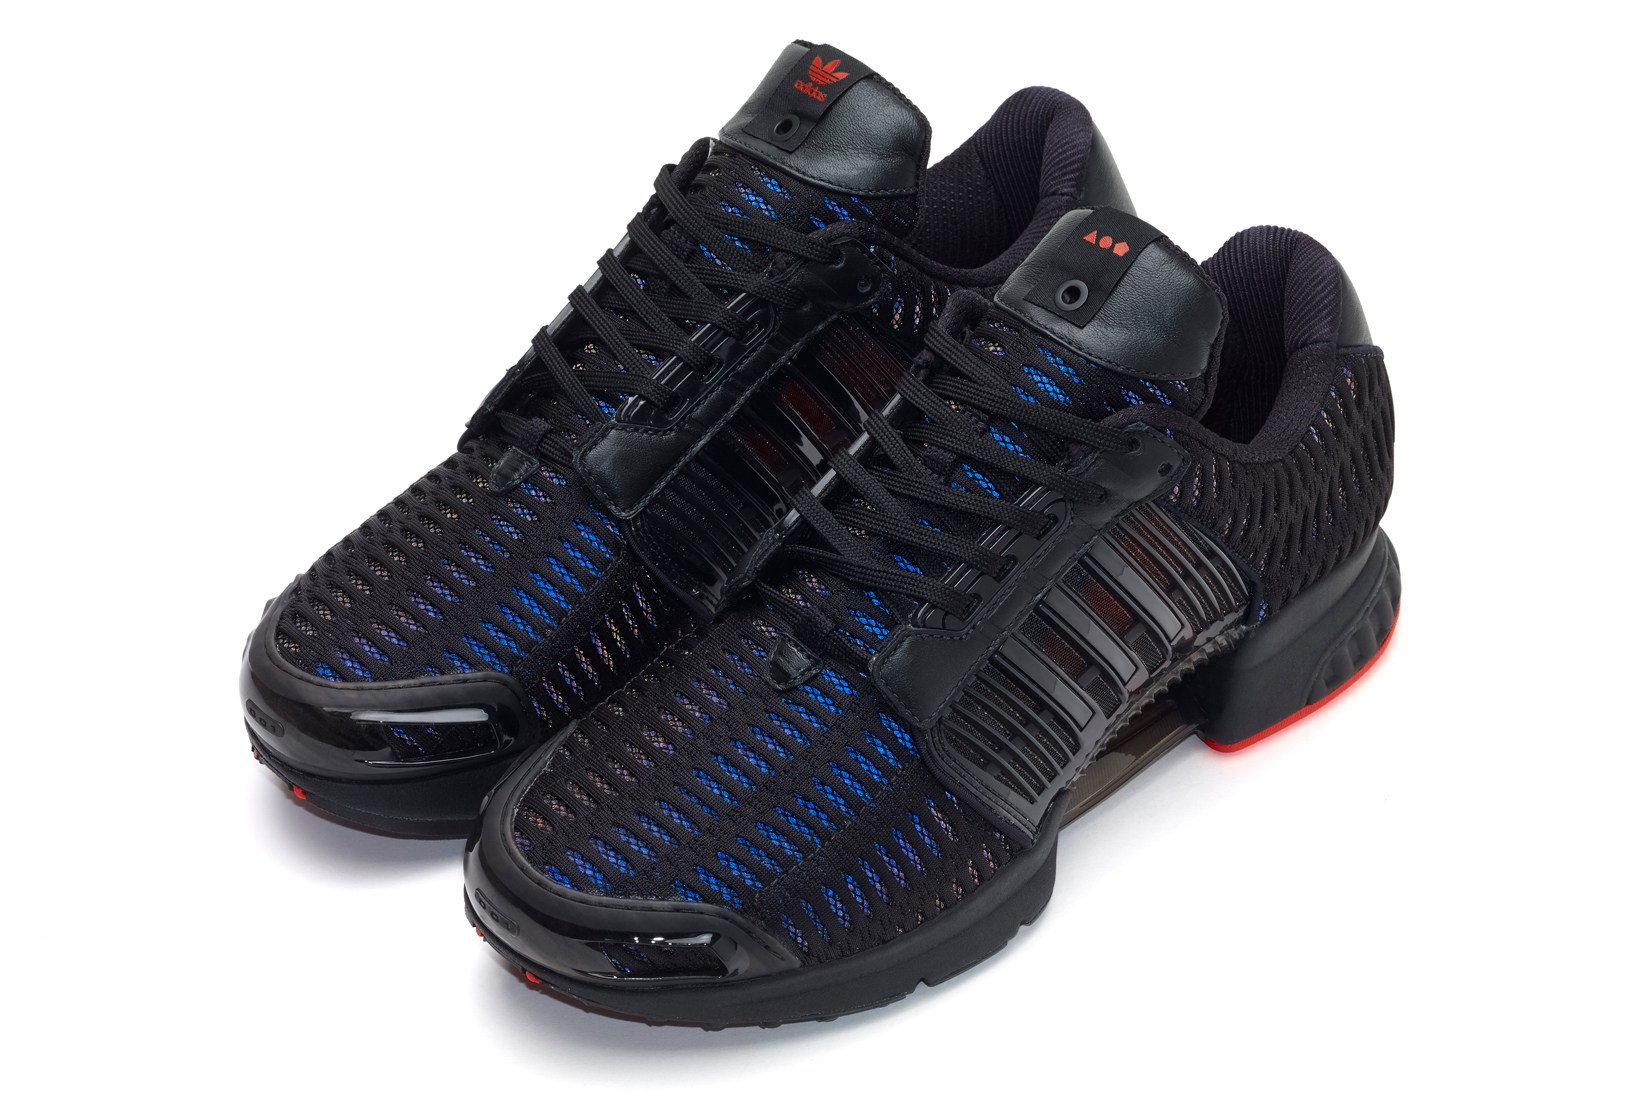 shoe-gallery-x-adidas-climacool-1-flight-305-5